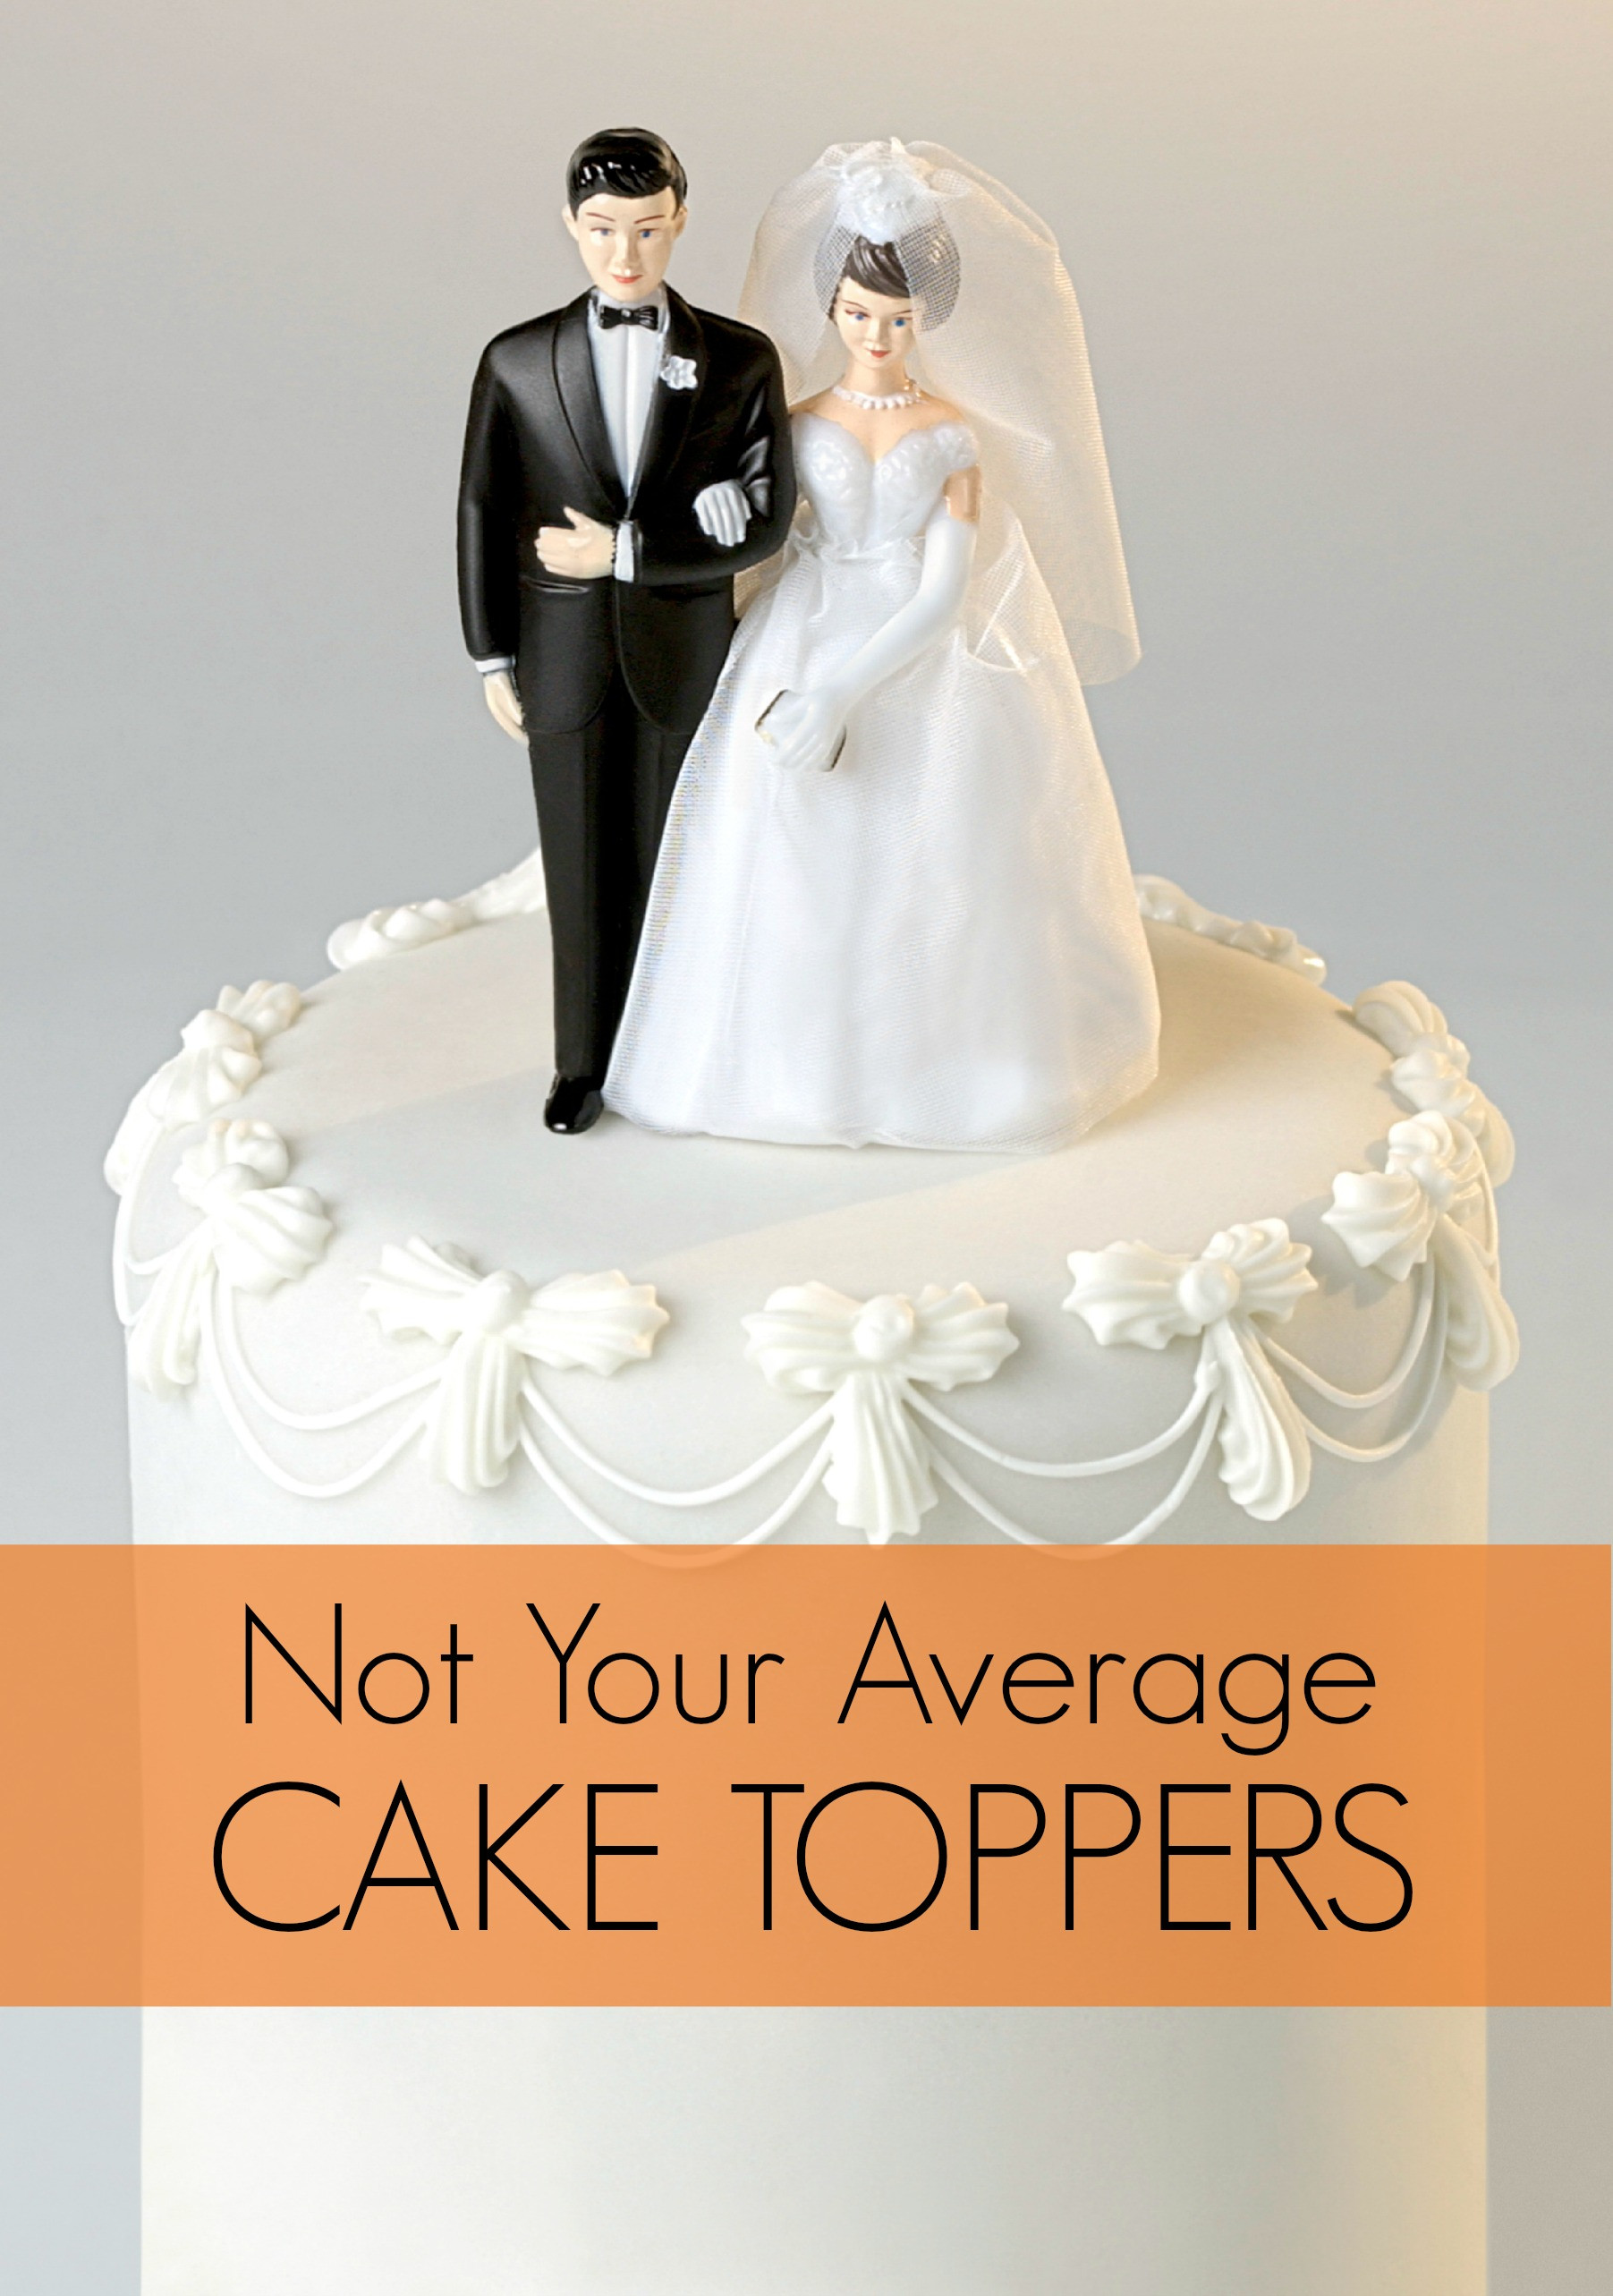 Wedding Cakes With Toppers  Not Your Average Cake Toppers